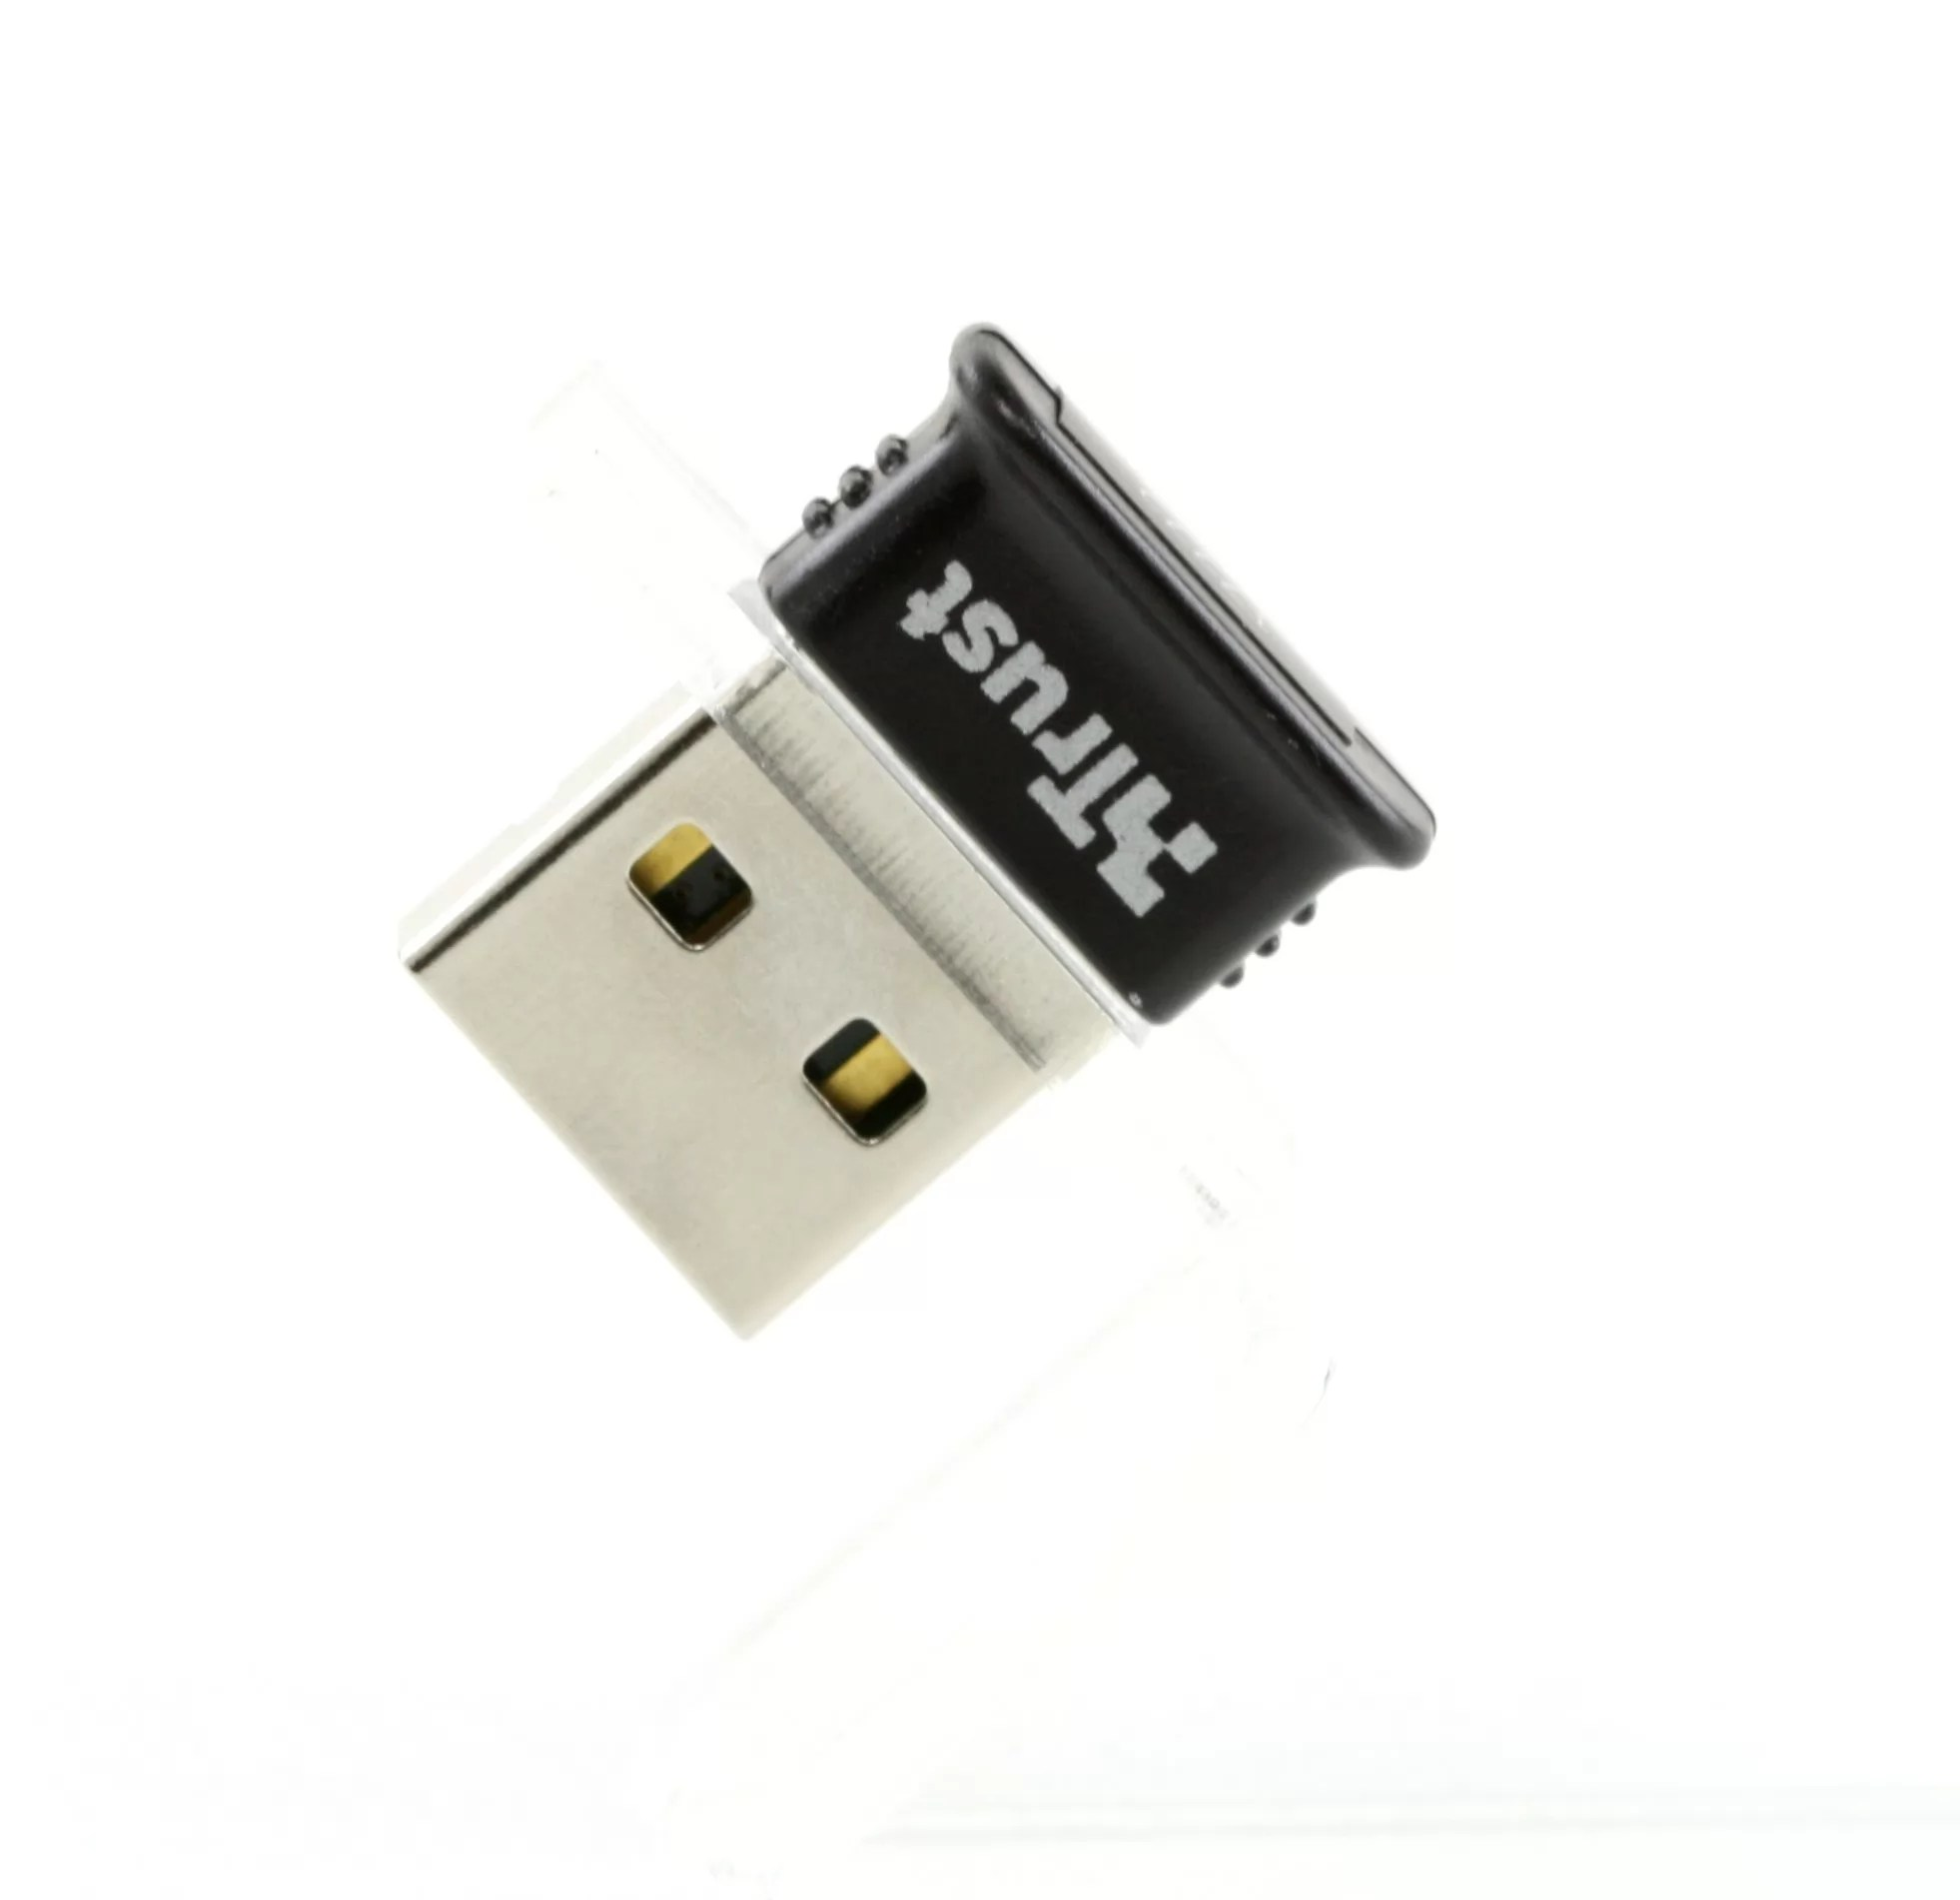 Trust Bluetooth 4.0 Usb Adapter Адаптер Usb2.0 -> Bluetooth Trust (17772) купить недорого